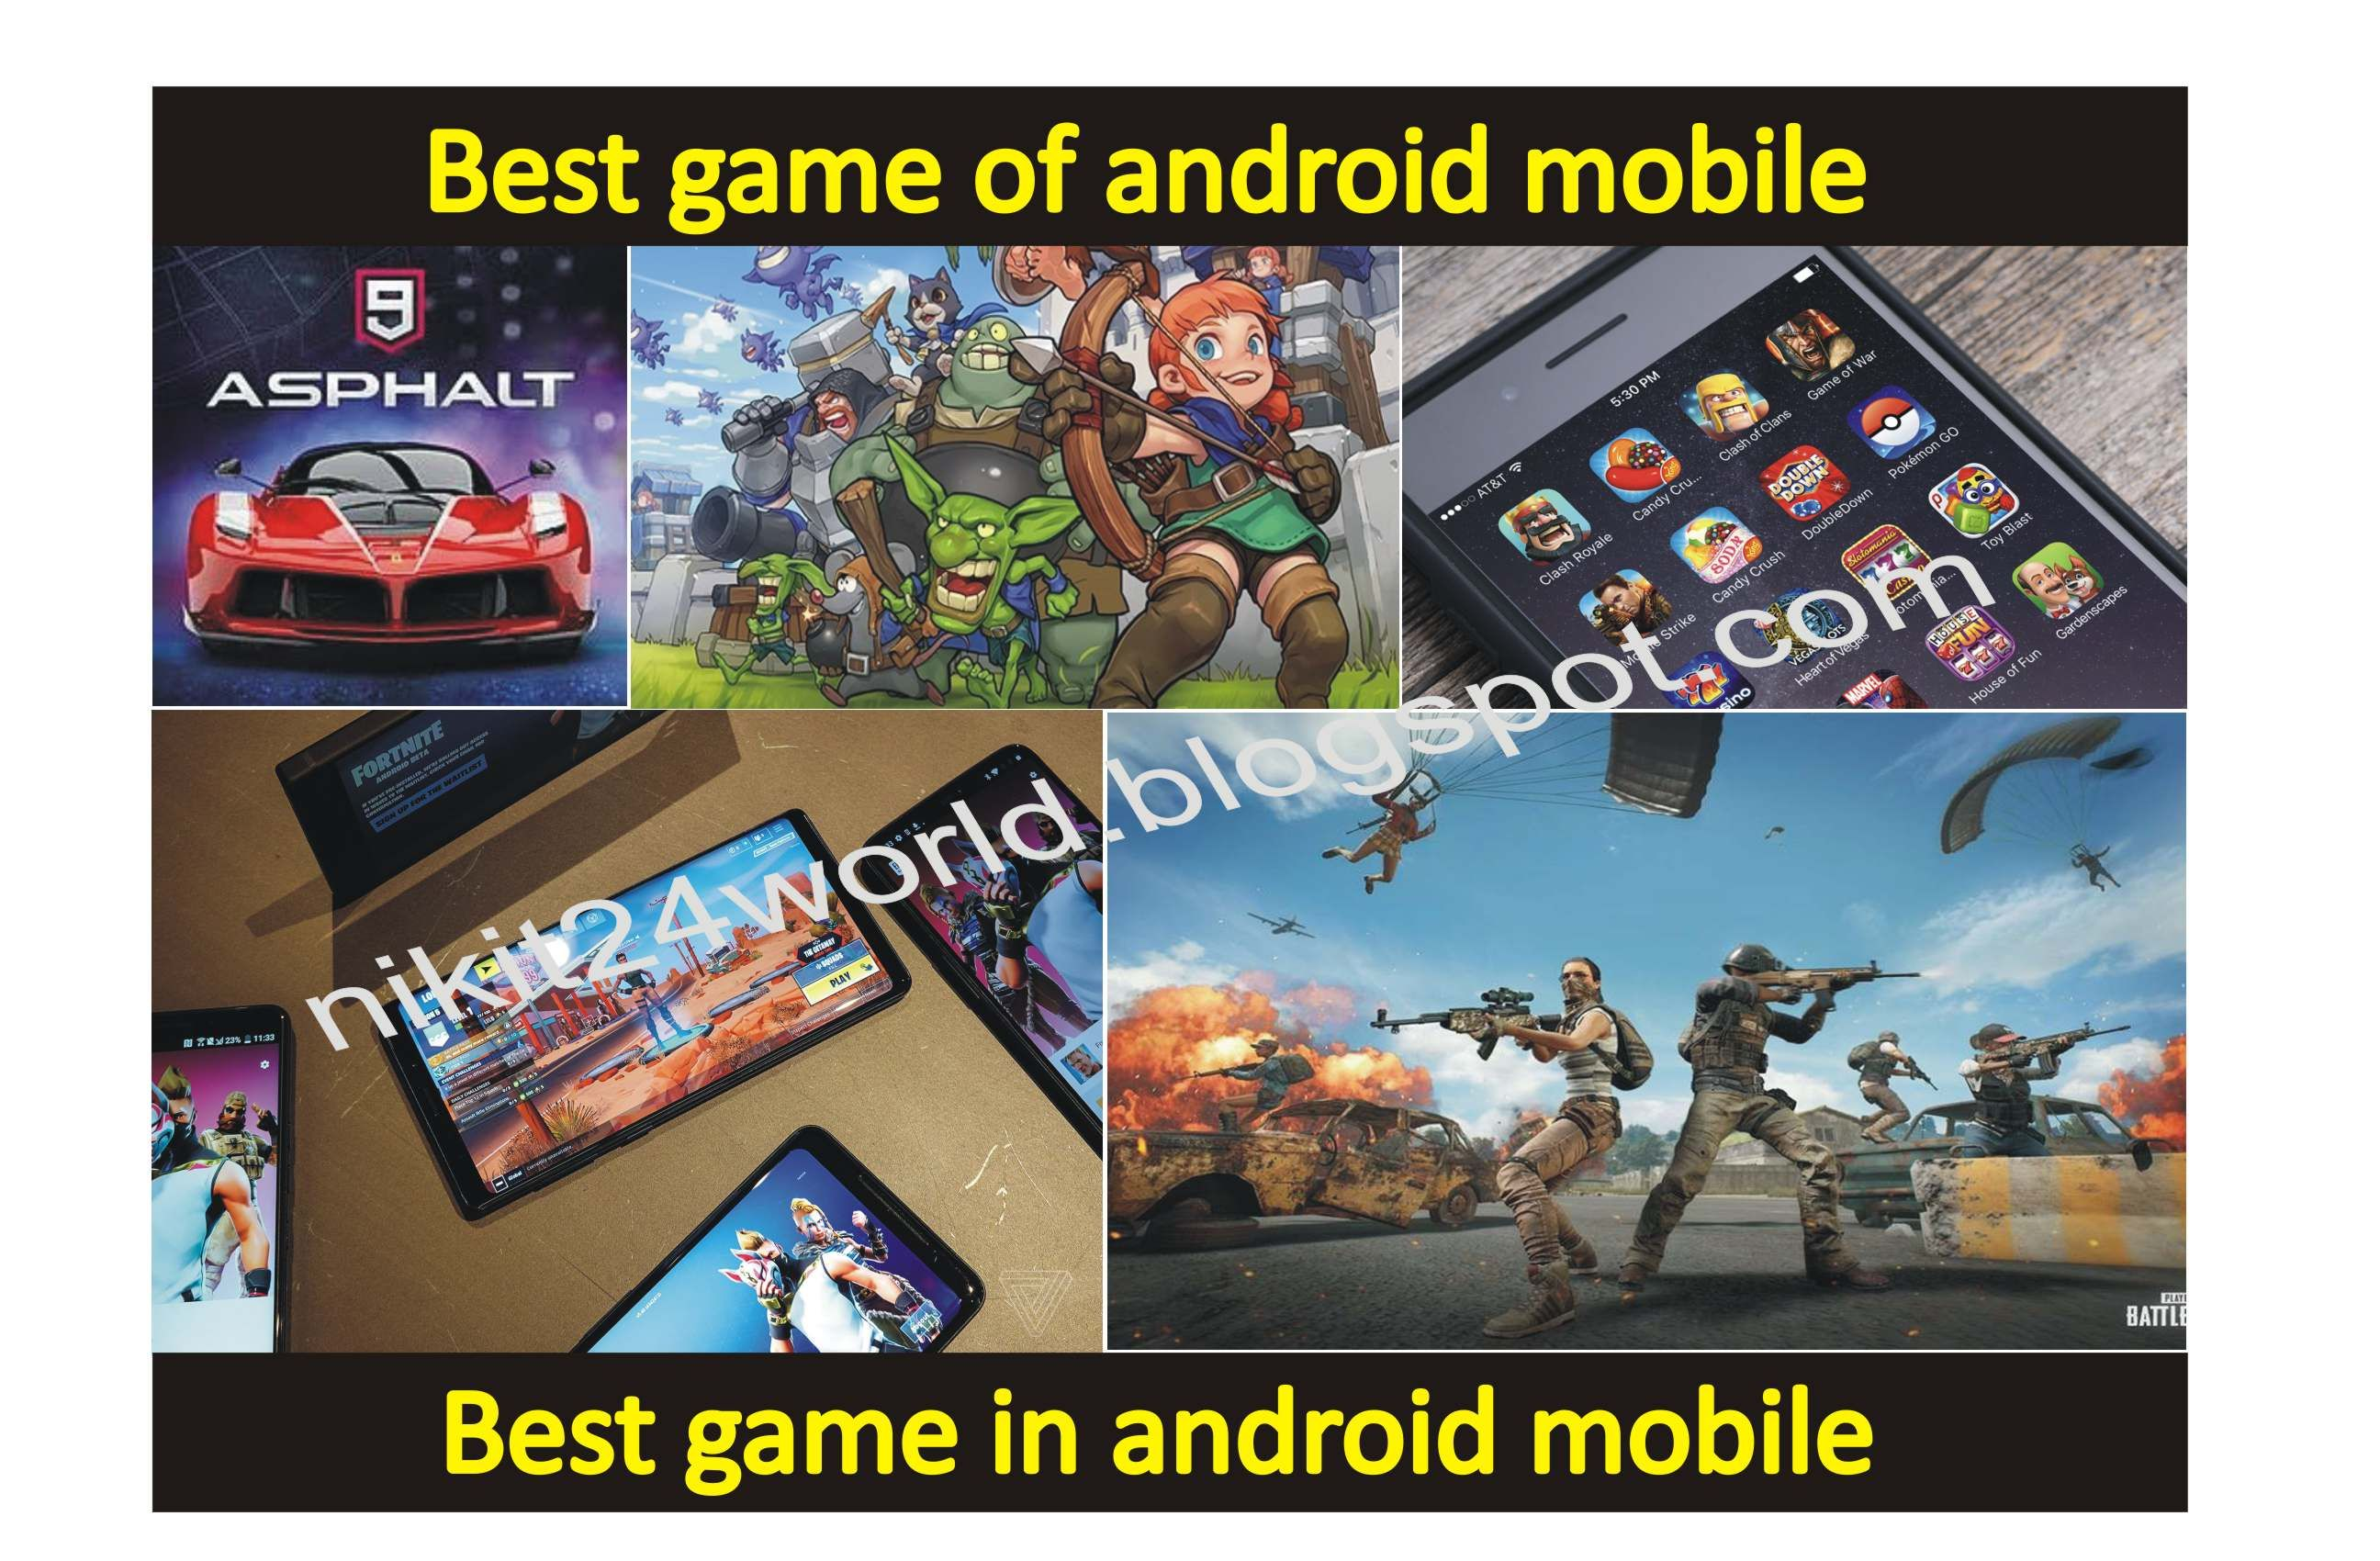 Best game of android mobile Best games, Best android